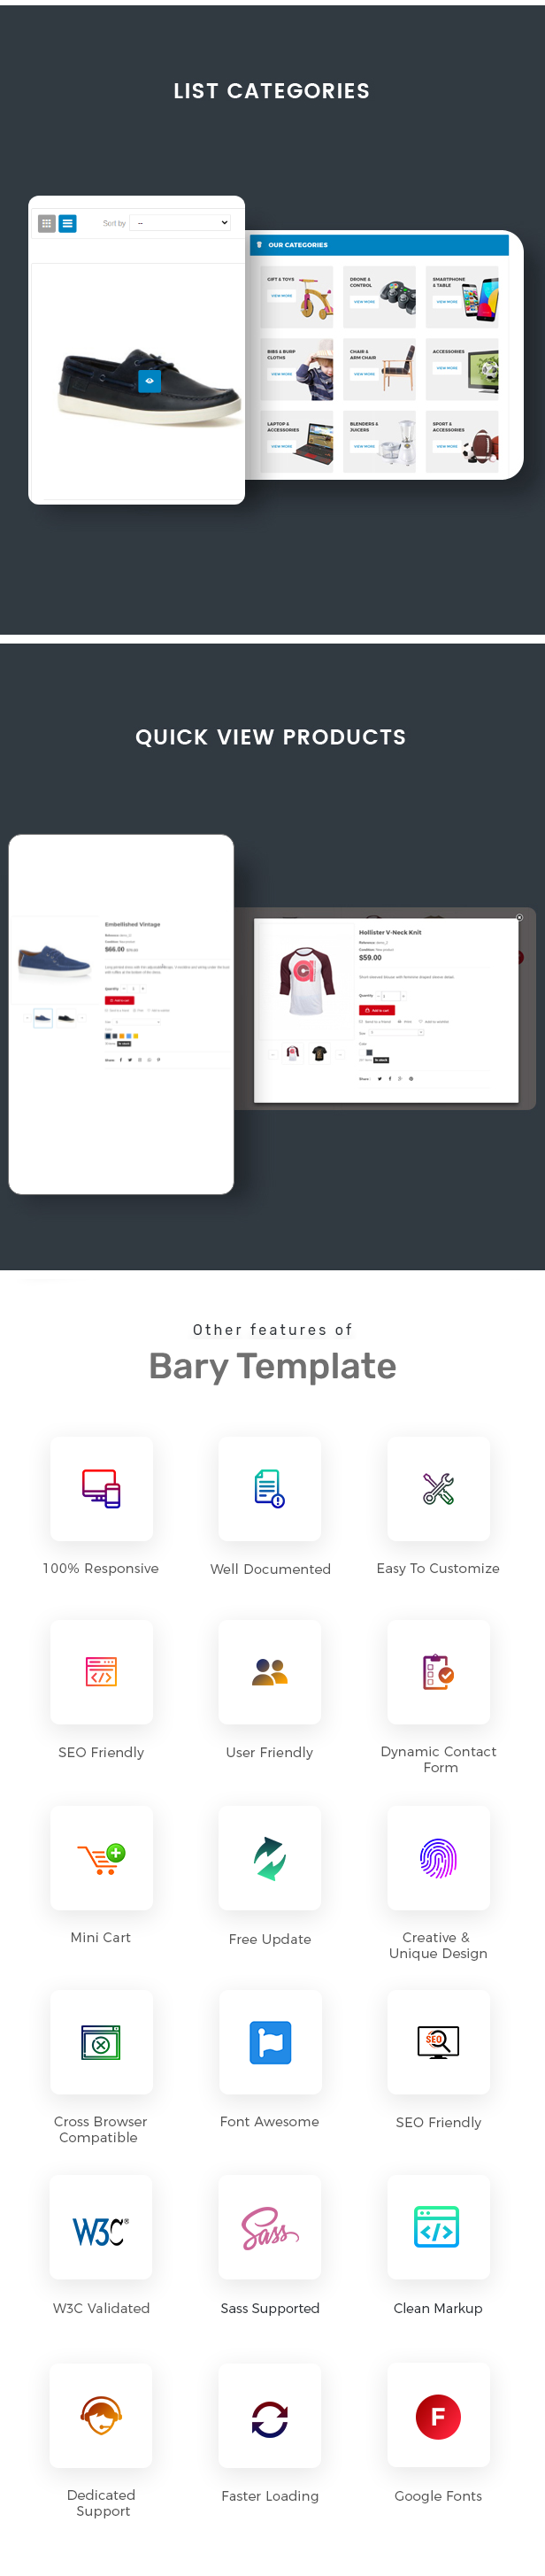 Bary - Responsive eCommerce HTML Template - 2